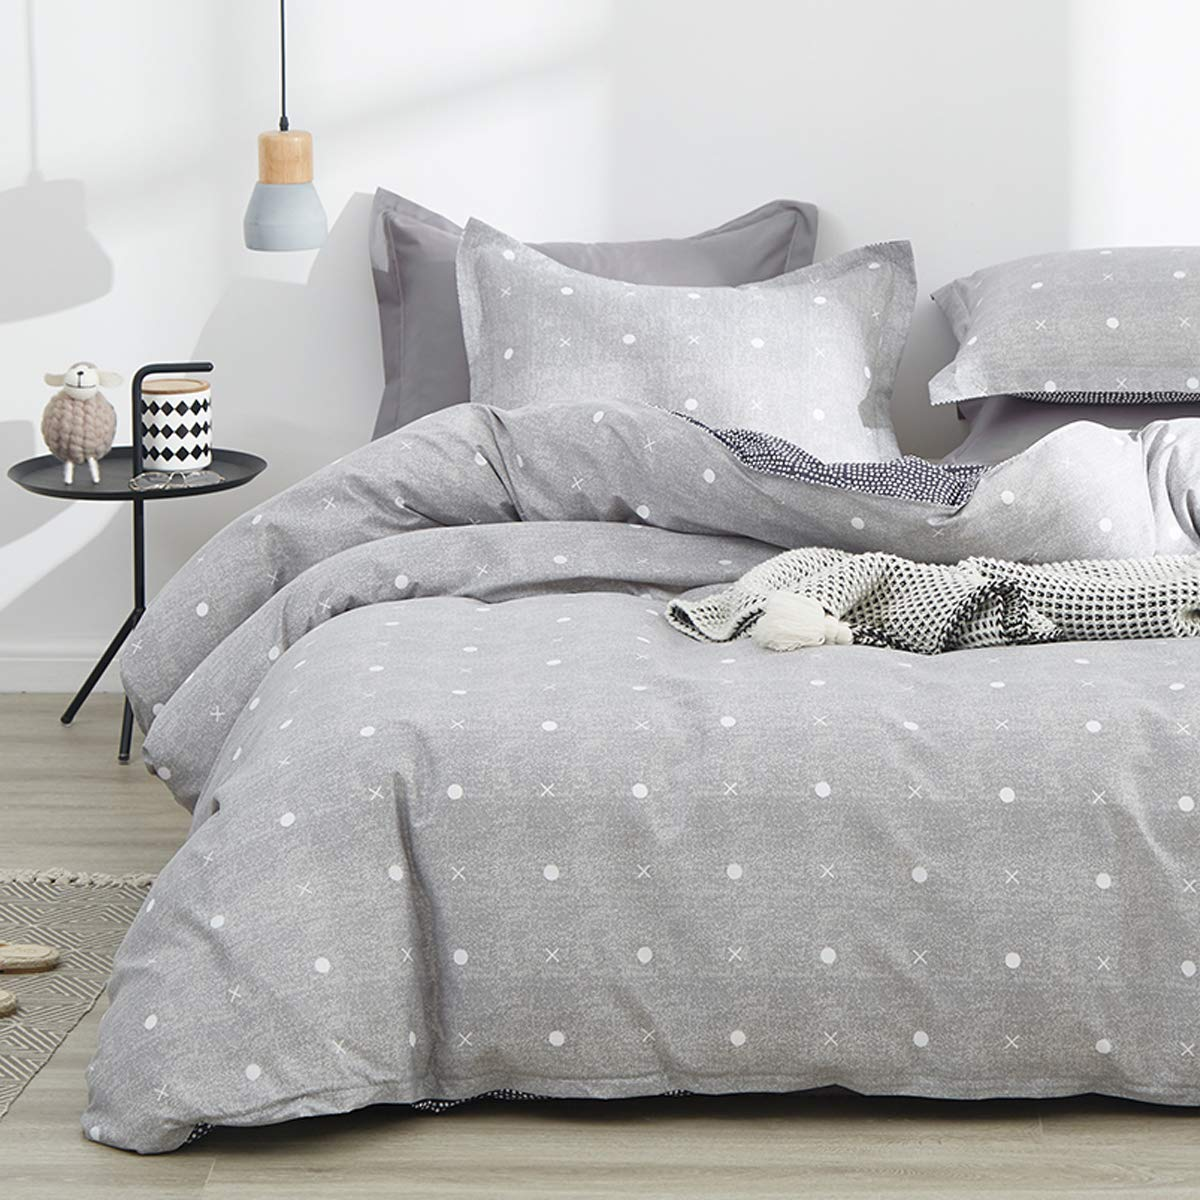 Uozzi Bedding 3 Piece Gray Duvet Cover Set (1 Queen Duvet Cover + 2 Pillow Shams) with Dots & Cross, 800 - TC Luxury Hypoallergenic Soft Spring Soft Comforter Cover with Zipper Closure, 4 Corner Ties